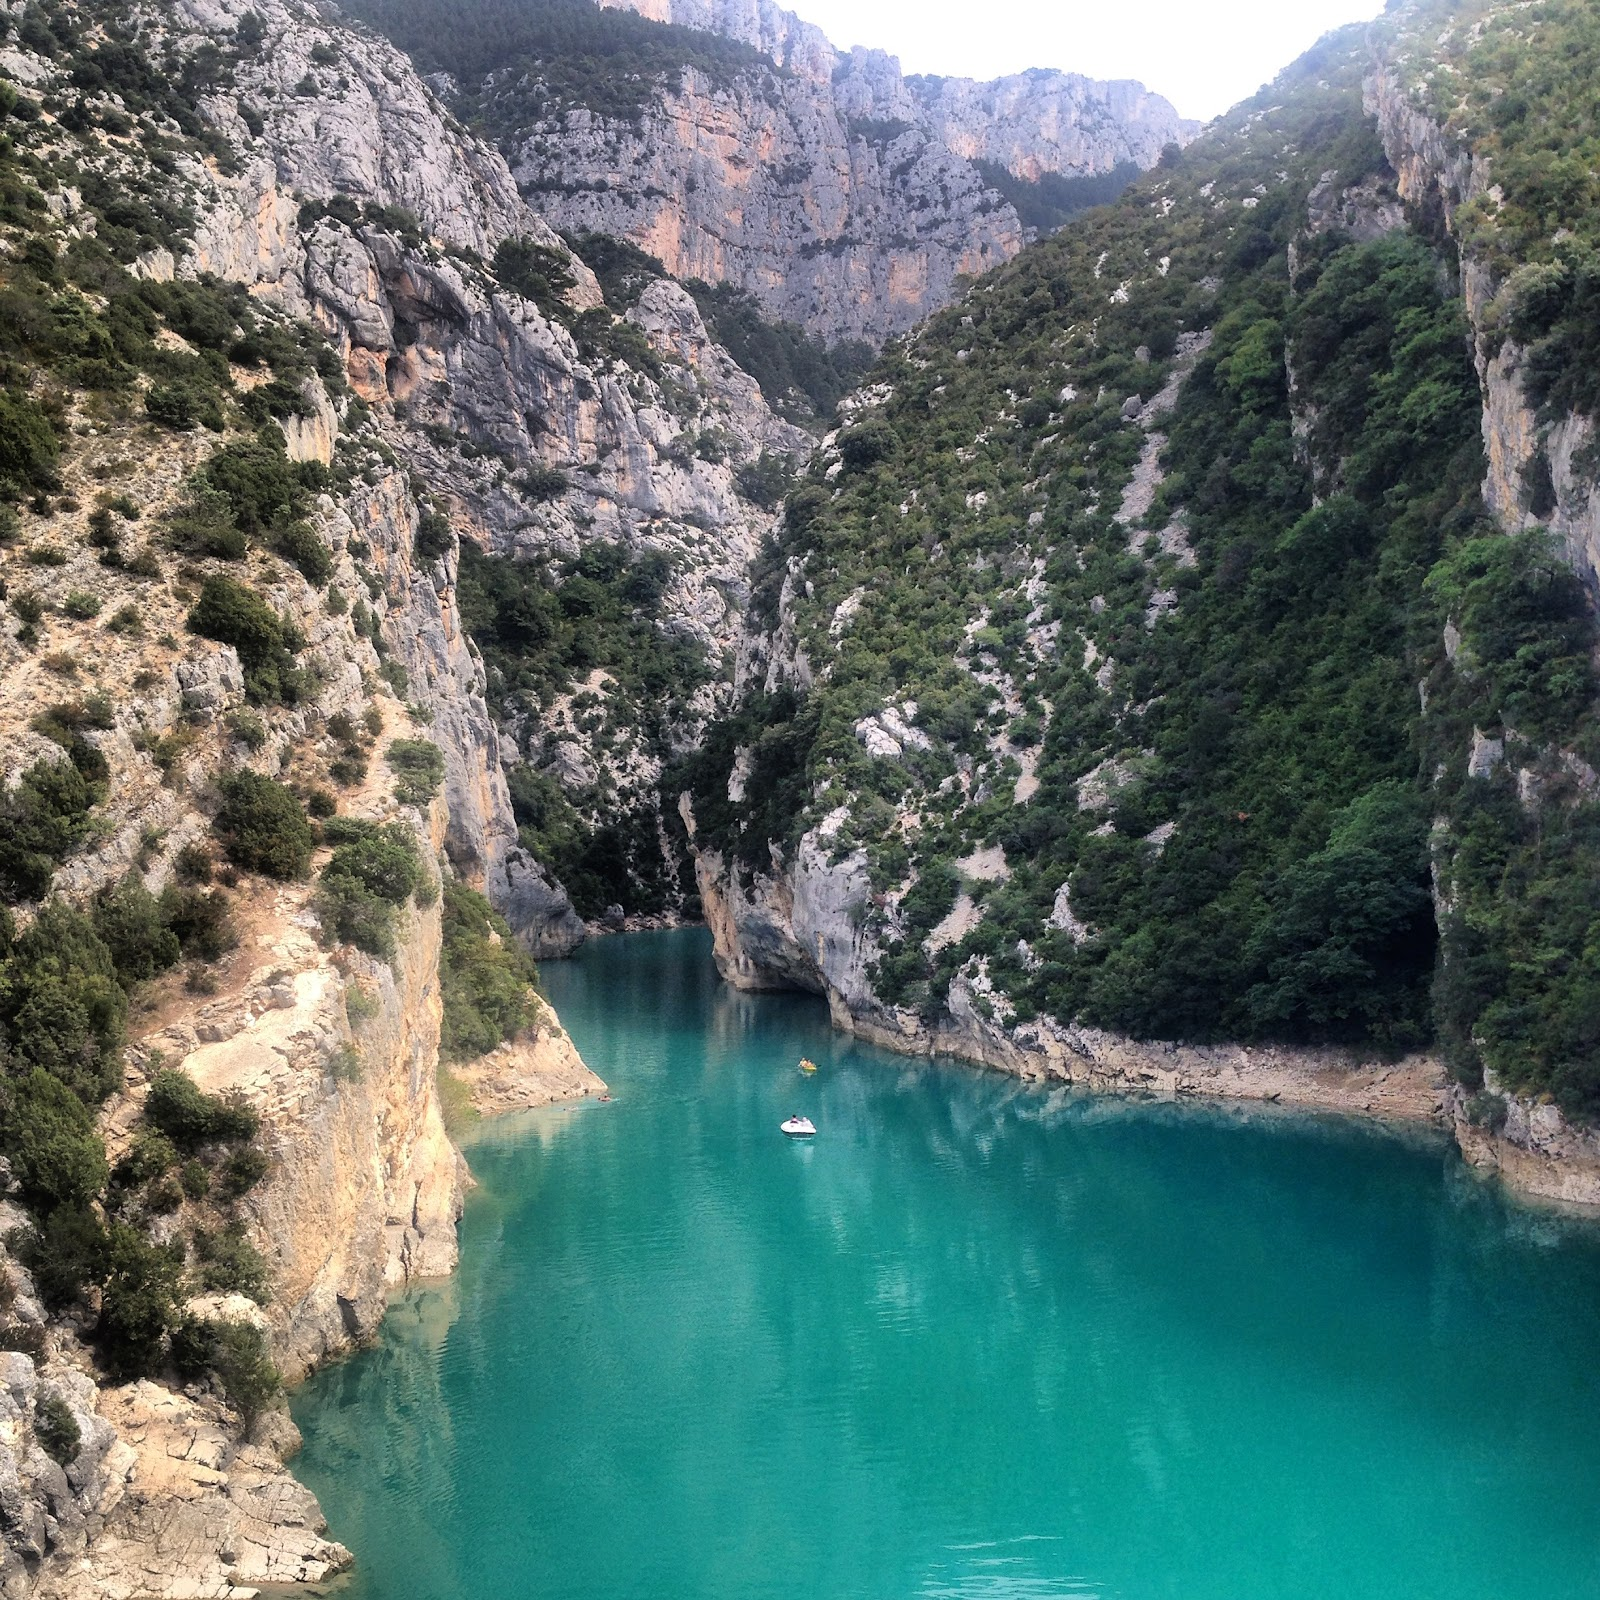 verdon gorge national park, turquoise calm lake surrounded by large limestone cliffs covered in green bushes. No tourists on this sunny day in french riviera, cote d'azur.